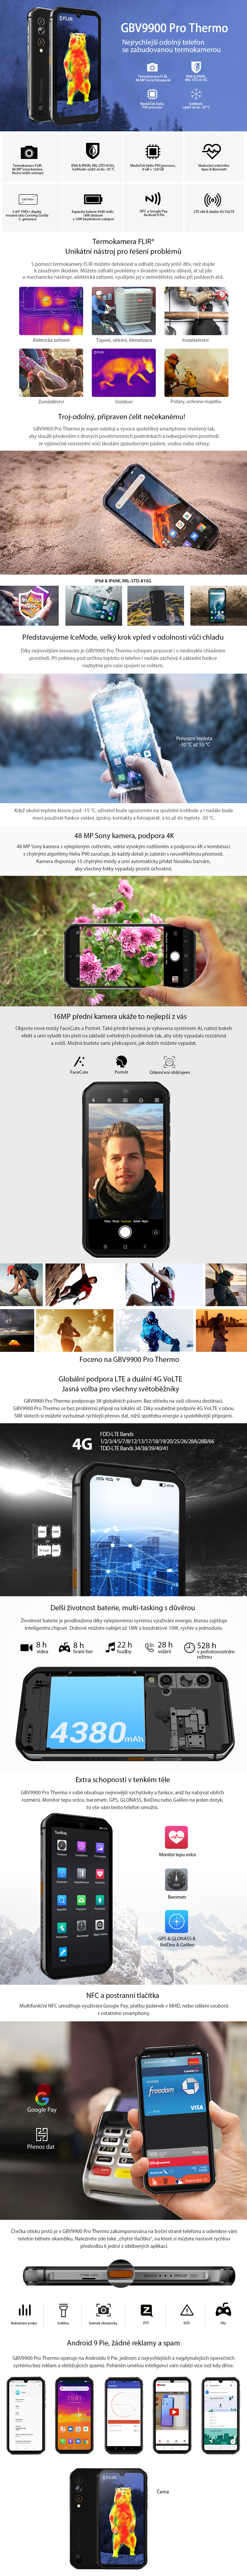 iGET BLACKVIEW GBV9900 Pro Thermo